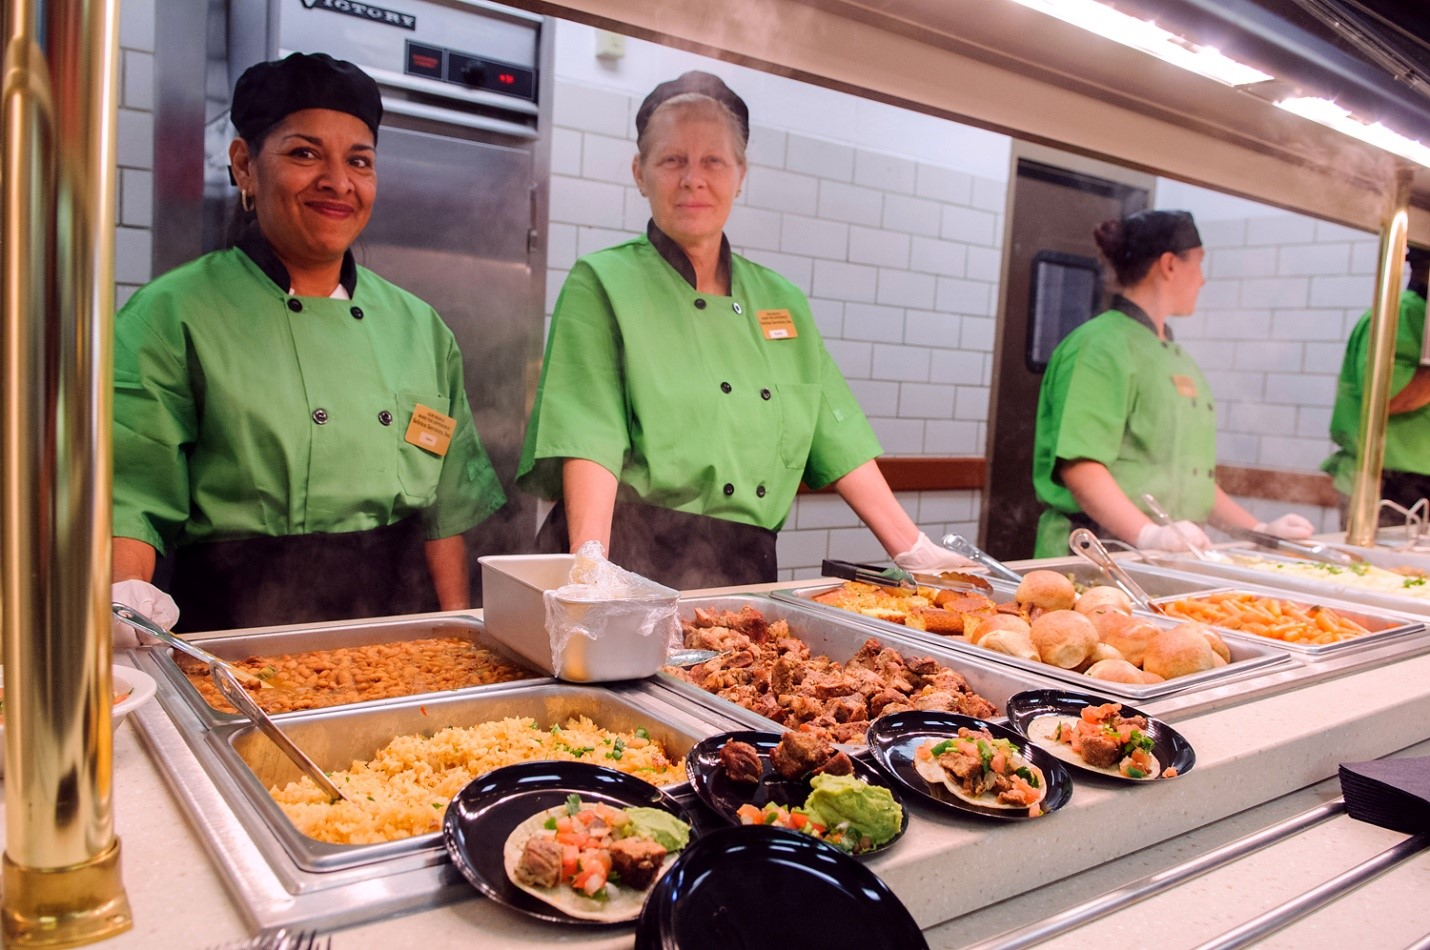 catering industry in malaysia A person working in food /hospitality / tourism / catering in malaysia typically  from industry to  for food /hospitality / tourism / catering is.